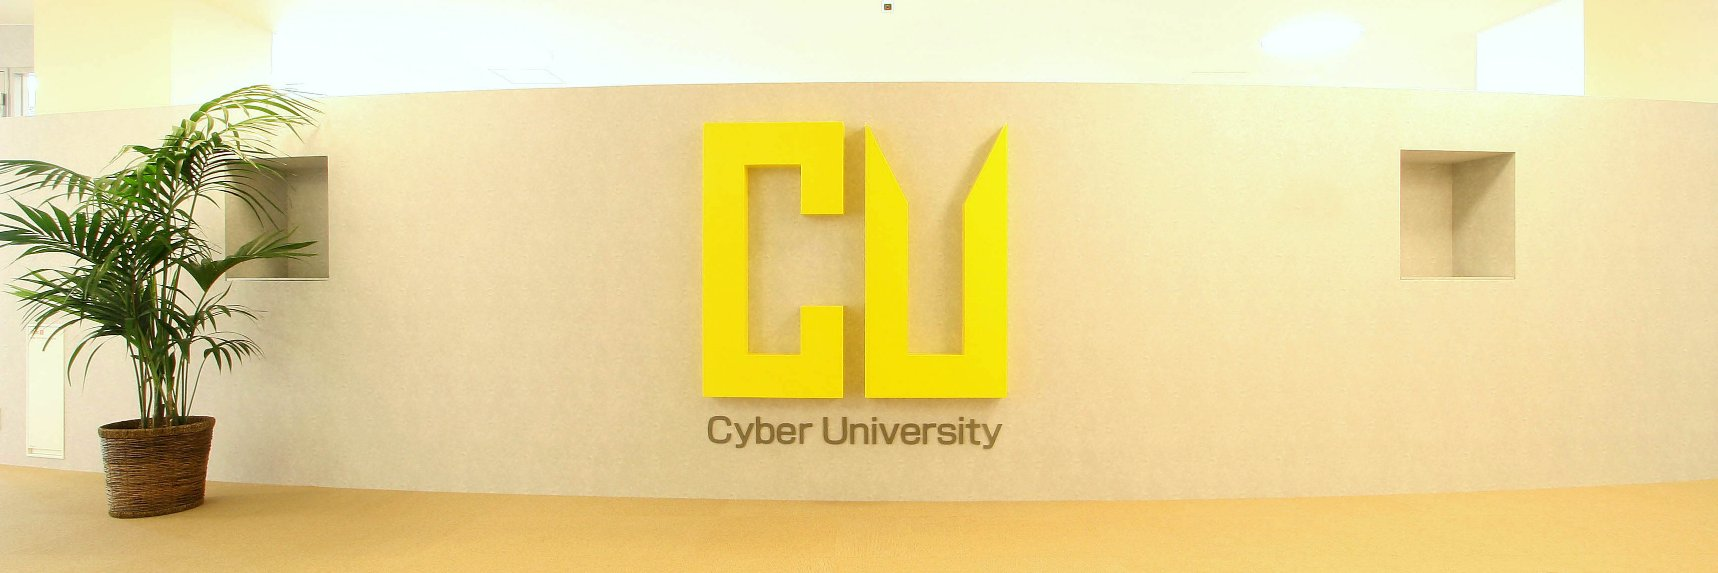 Cyber University's official Twitter account